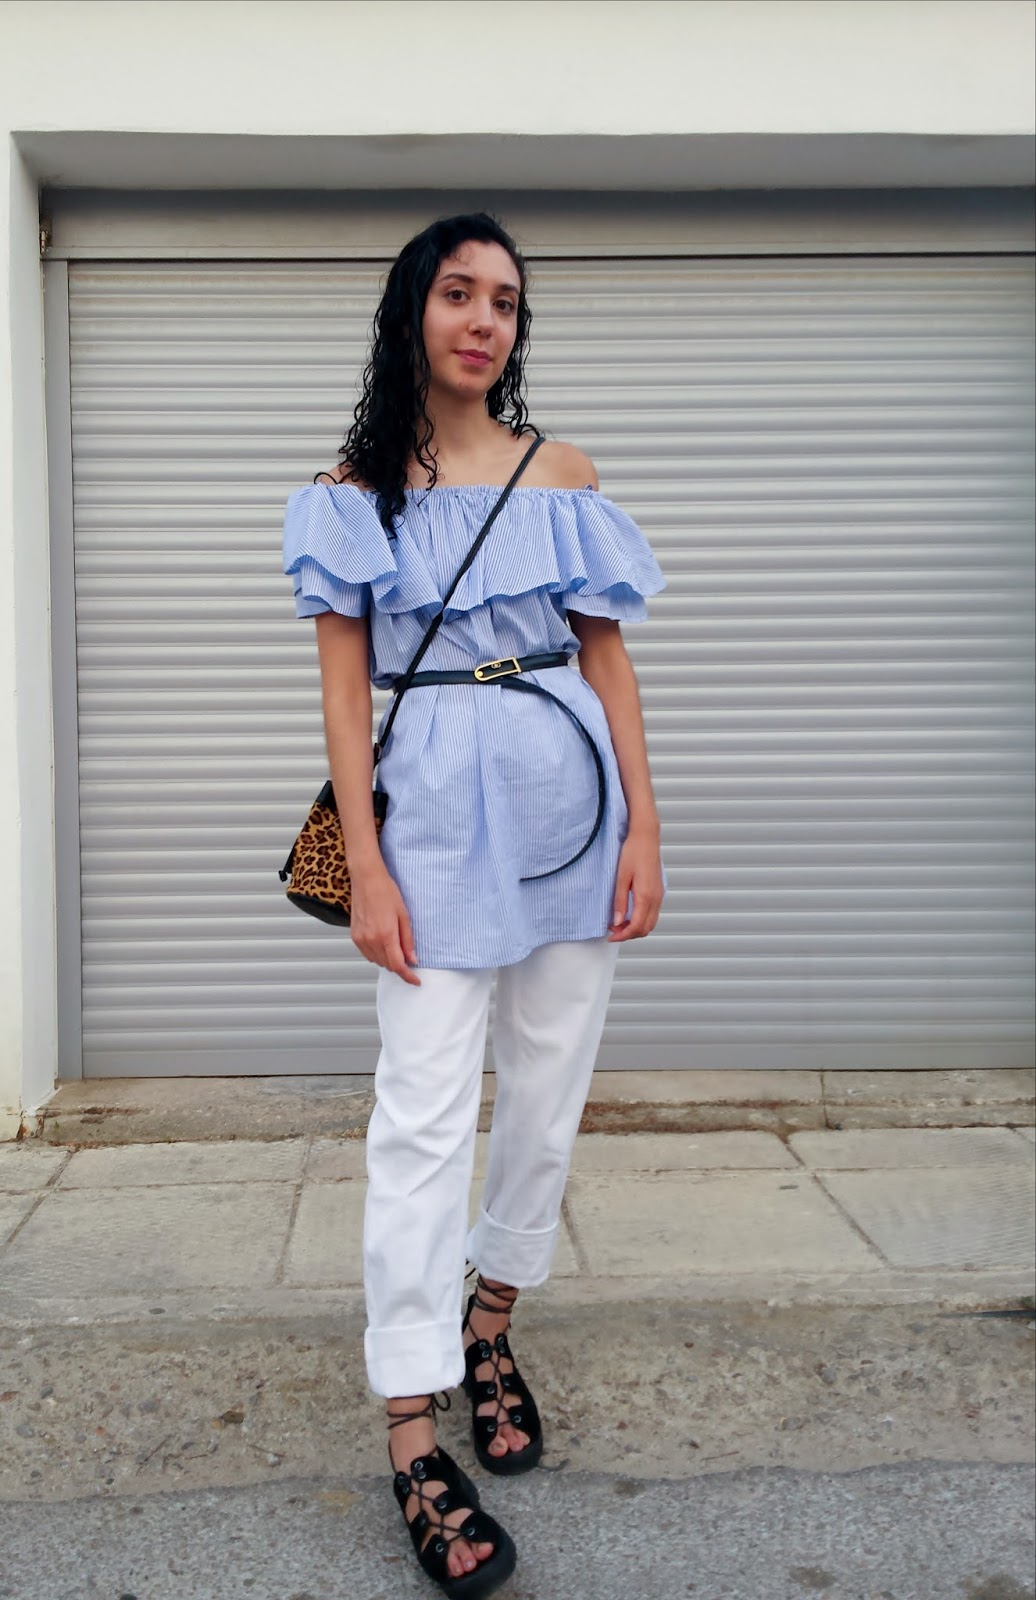 How to wear the Off-shoulder dress: With a Belt over Mom Jeans